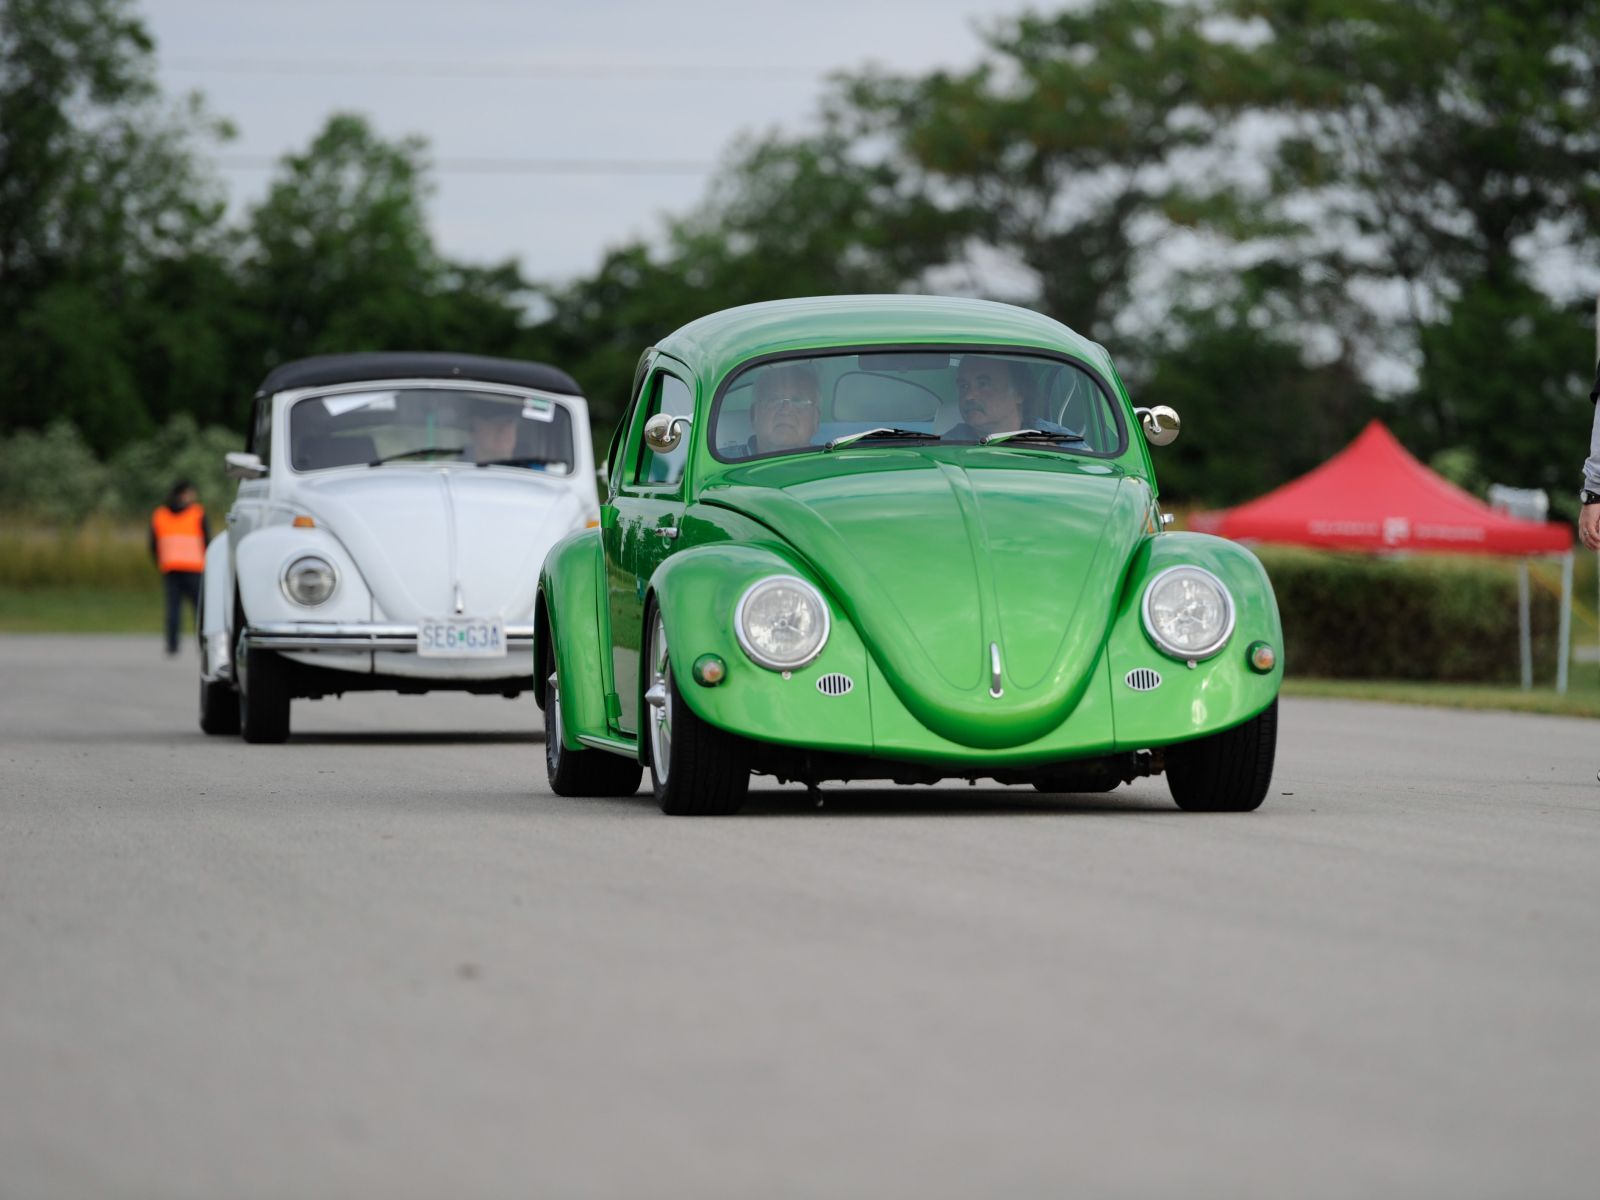 Funfest For Air Cooled Vw 2012 Green Bug Photo 124 1600x1200